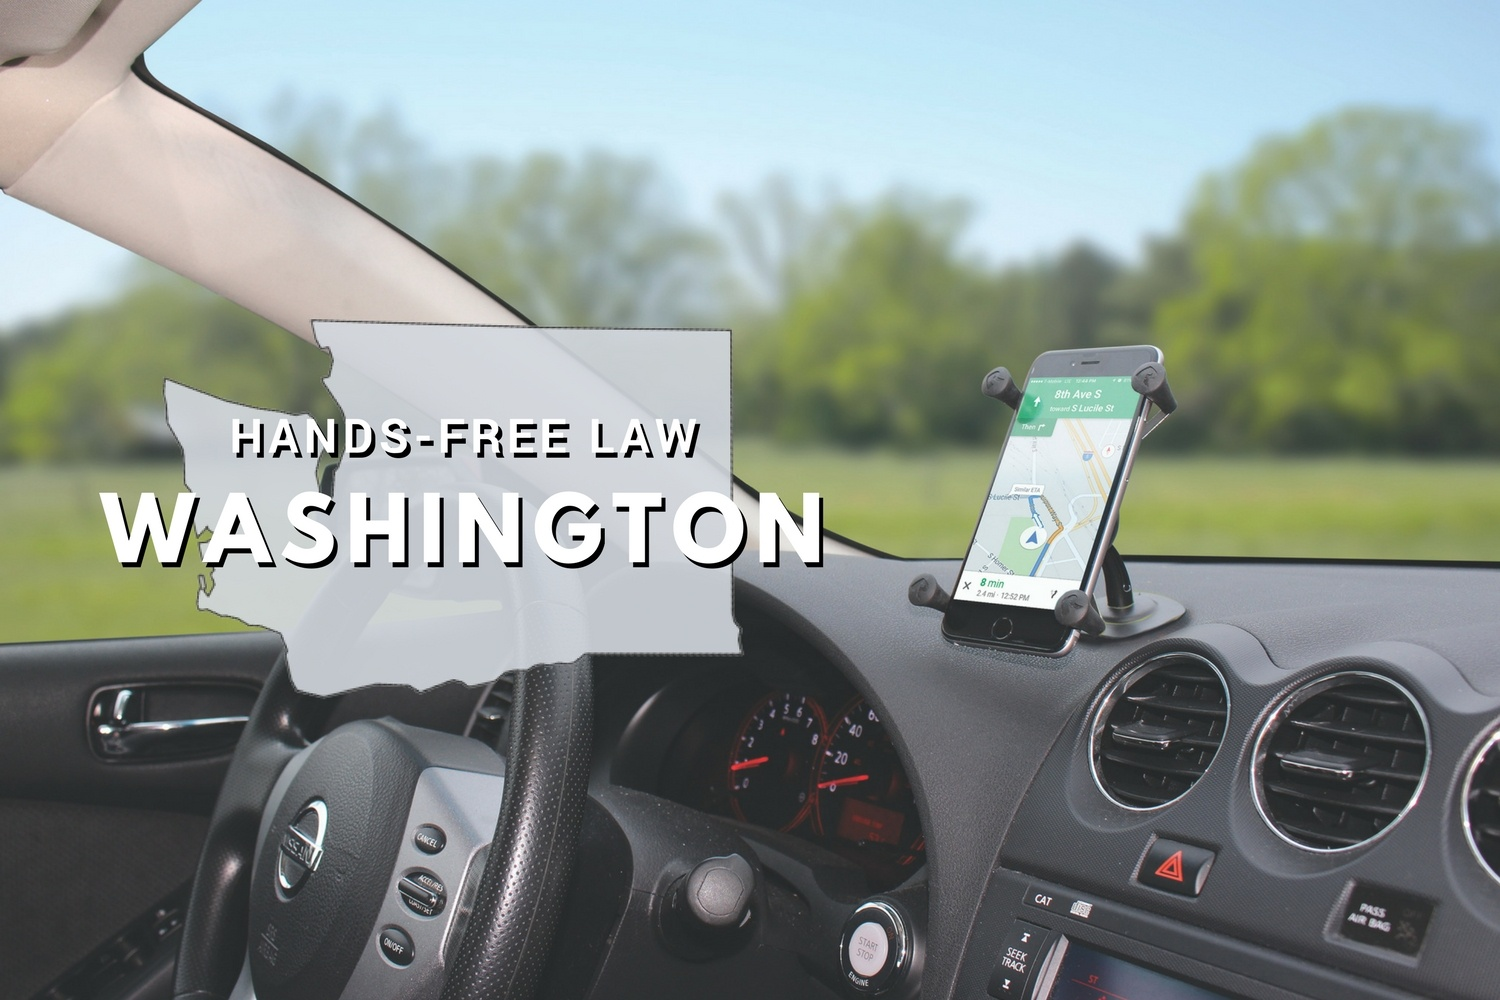 Washington Hands-Free Law: Where to Mount Your Phone in Your Car